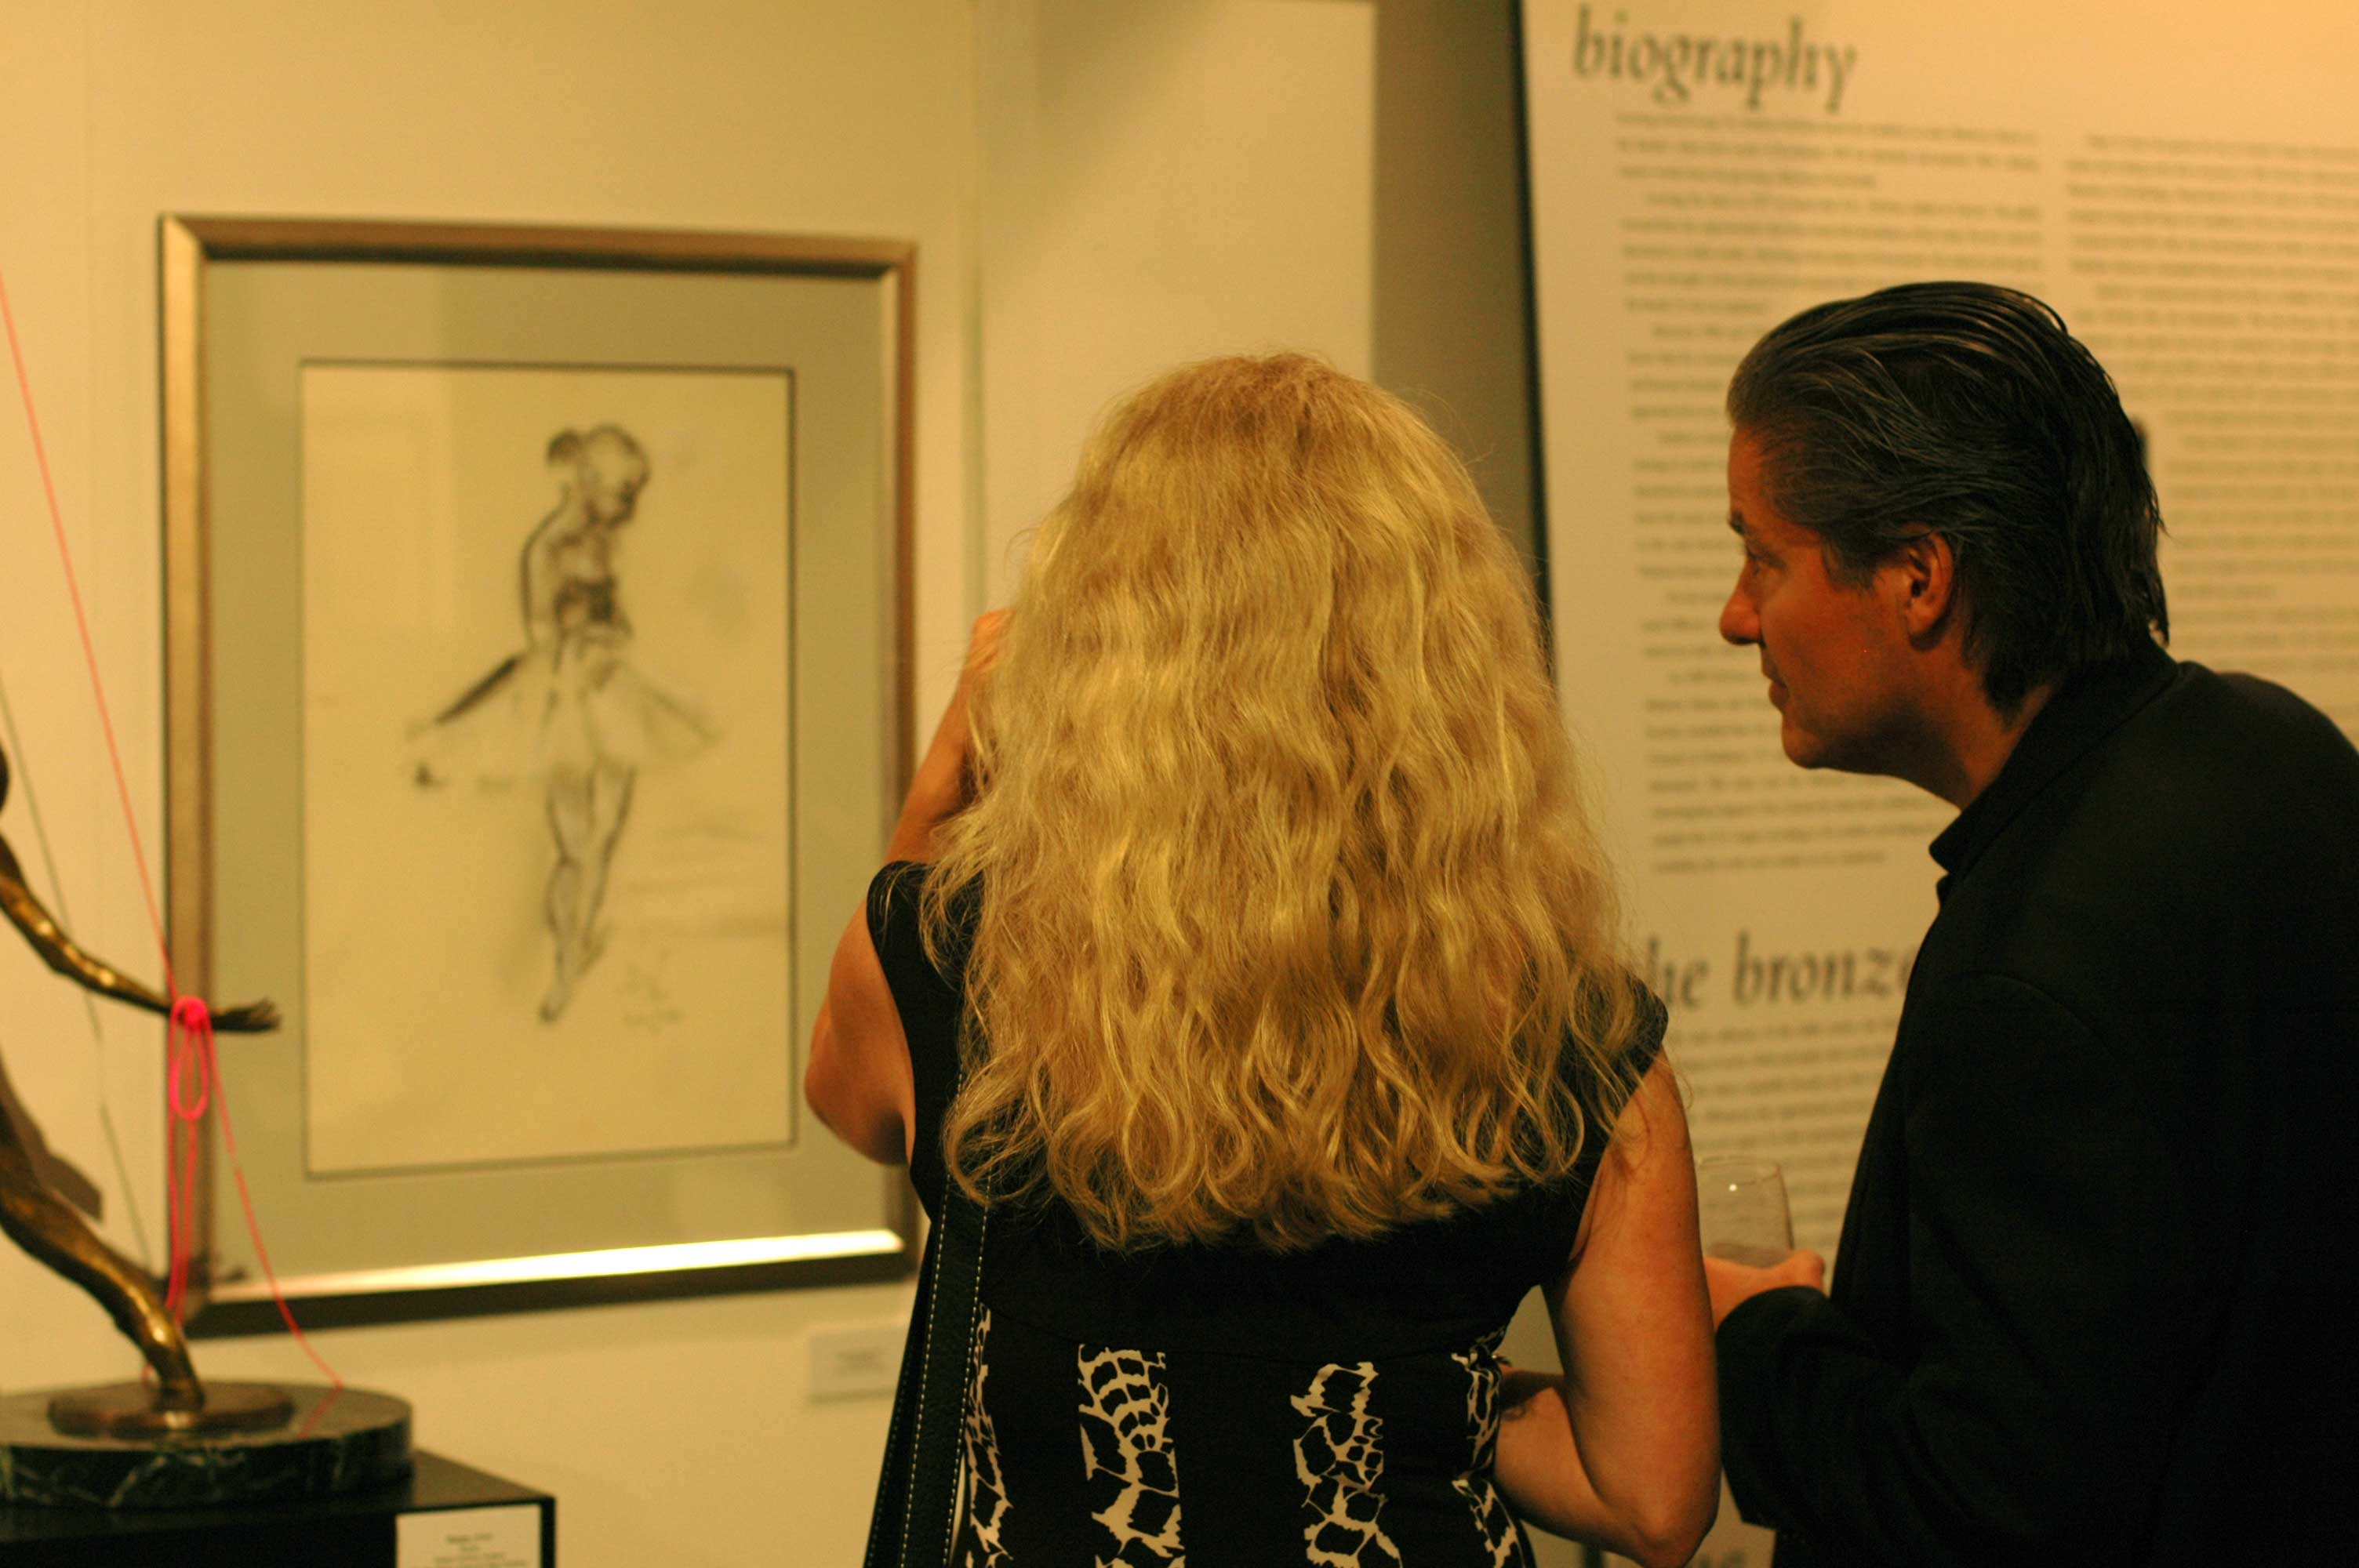 Museum visitors viewing a dance drawing by Andrew DeVries at the National Museum of Dance during the Opening Reception of Homage to Dance